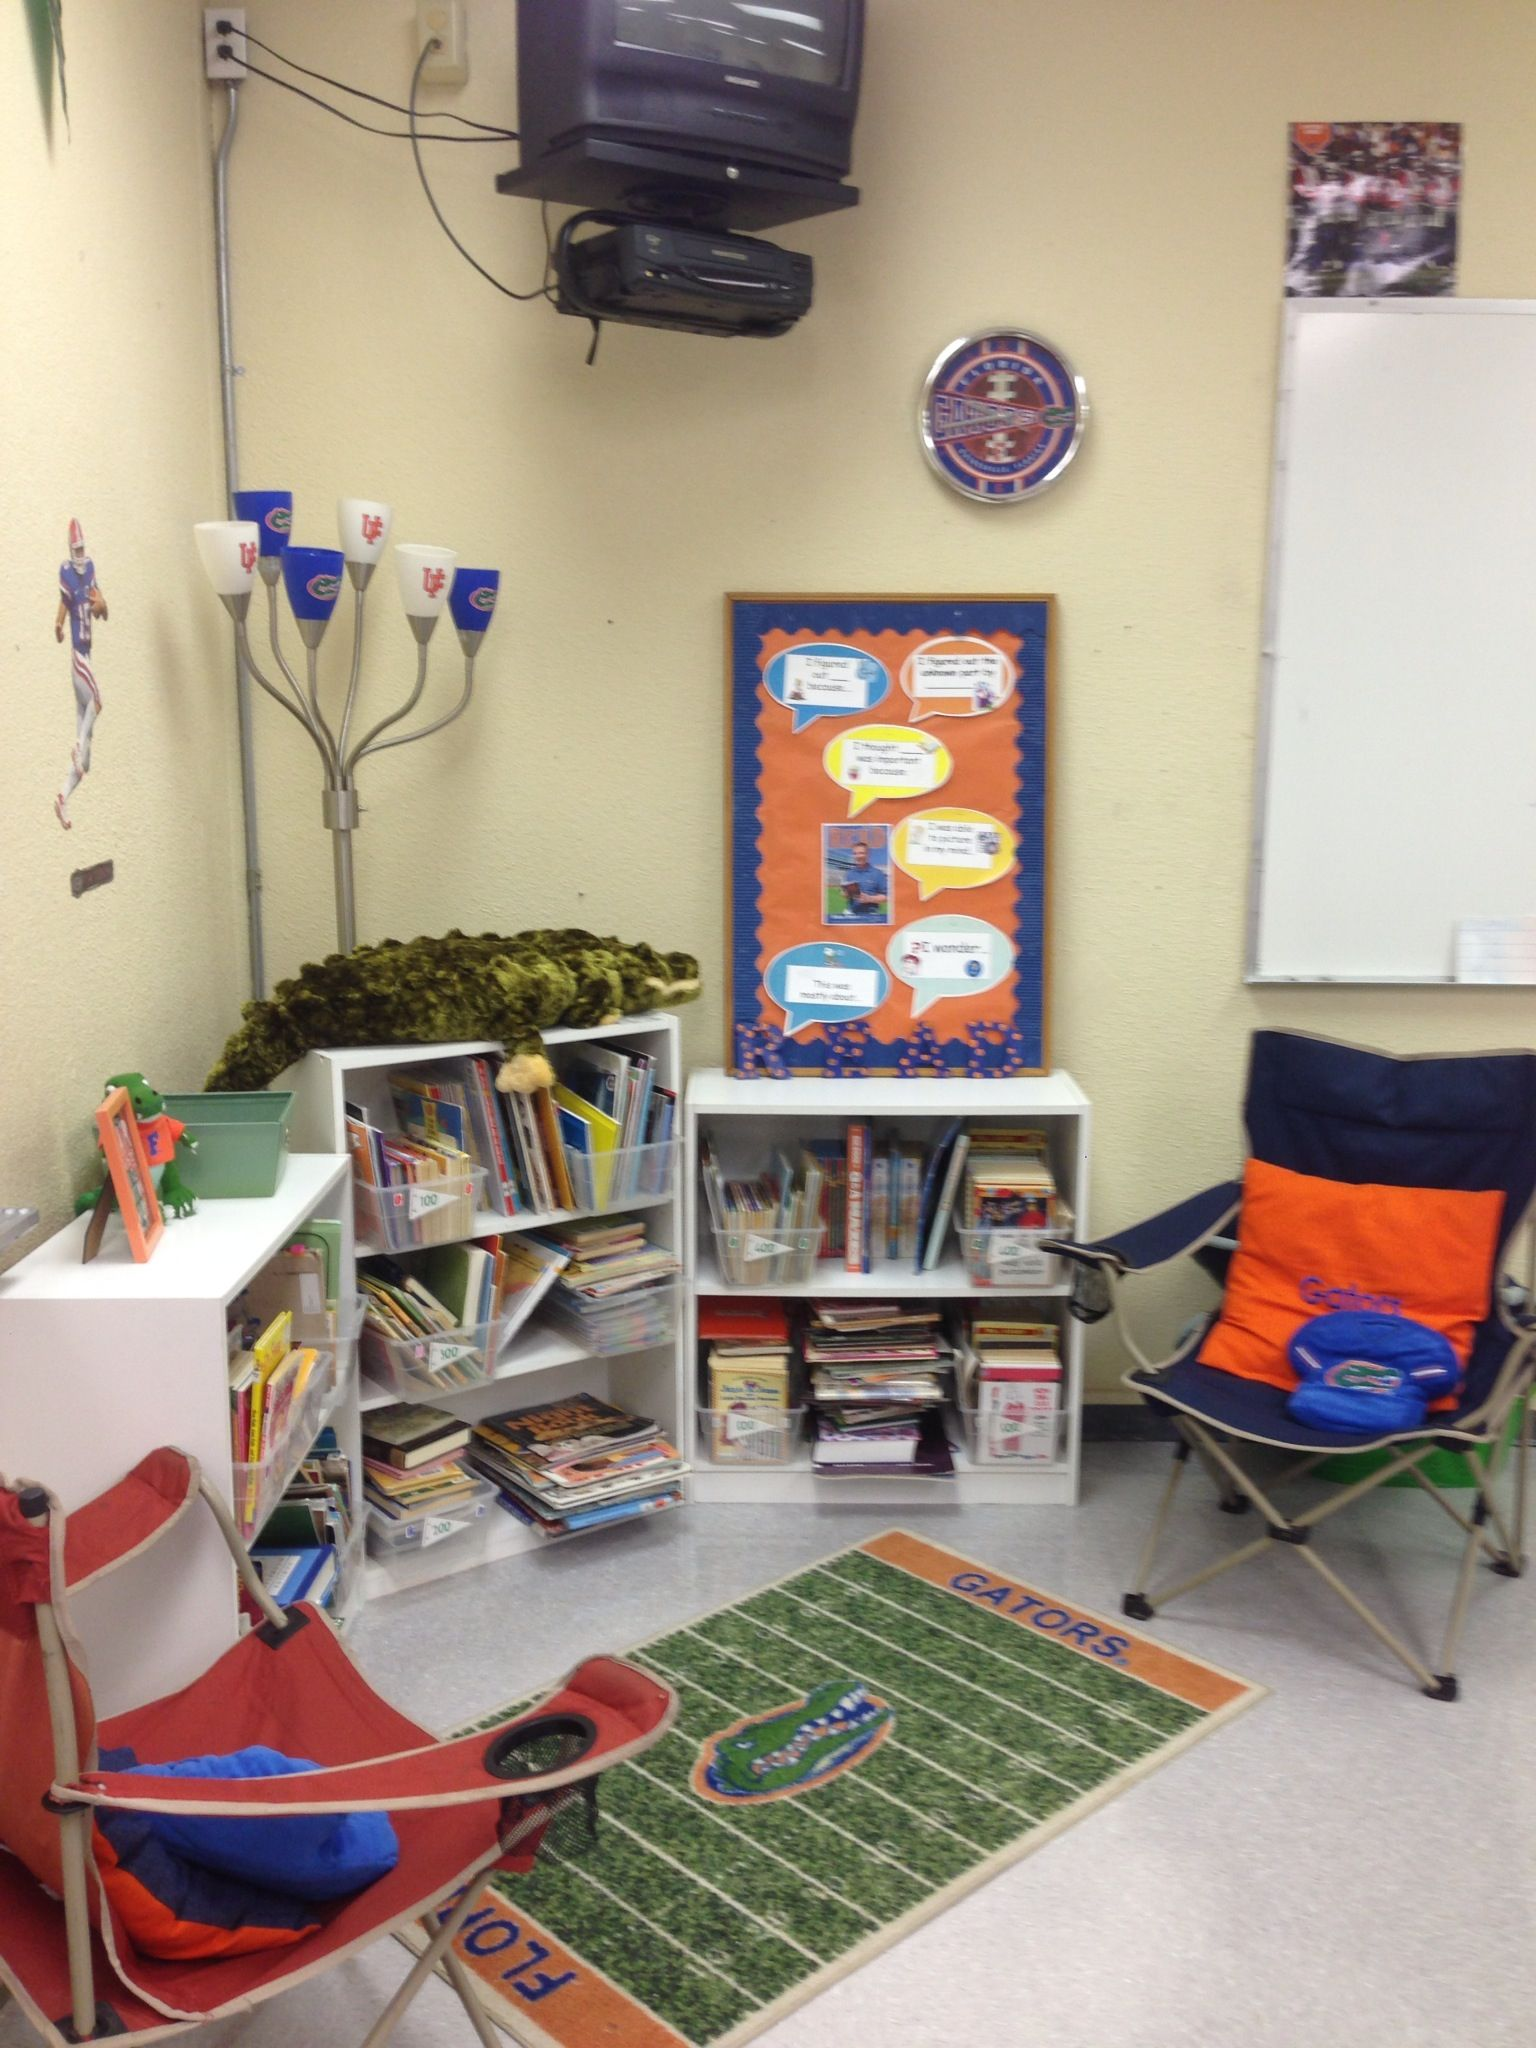 The Swamp reading area